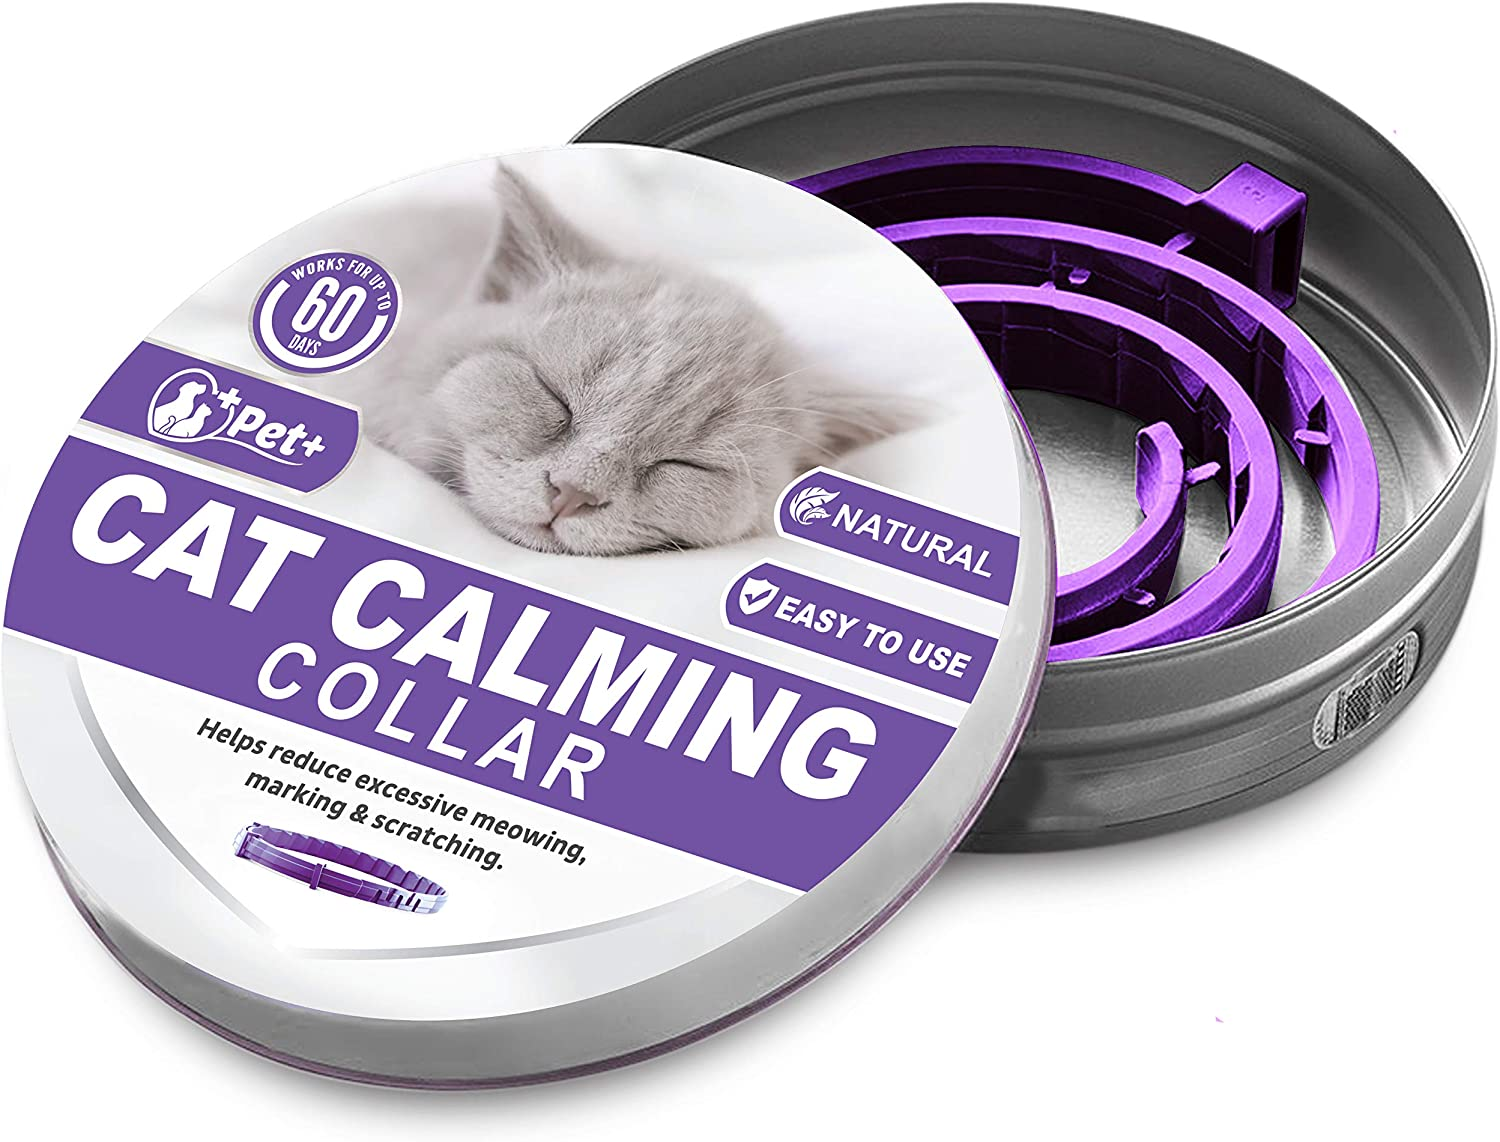 PETPLUS Cat Calming Collar for Cats | Purrfect to Reduce Your Pet's Anxiety or Aggression | Pheromones for Cats & Cat Anxiety Relief | Cat Calming Products for Kittens | 2-Month Protection, 1 Collar